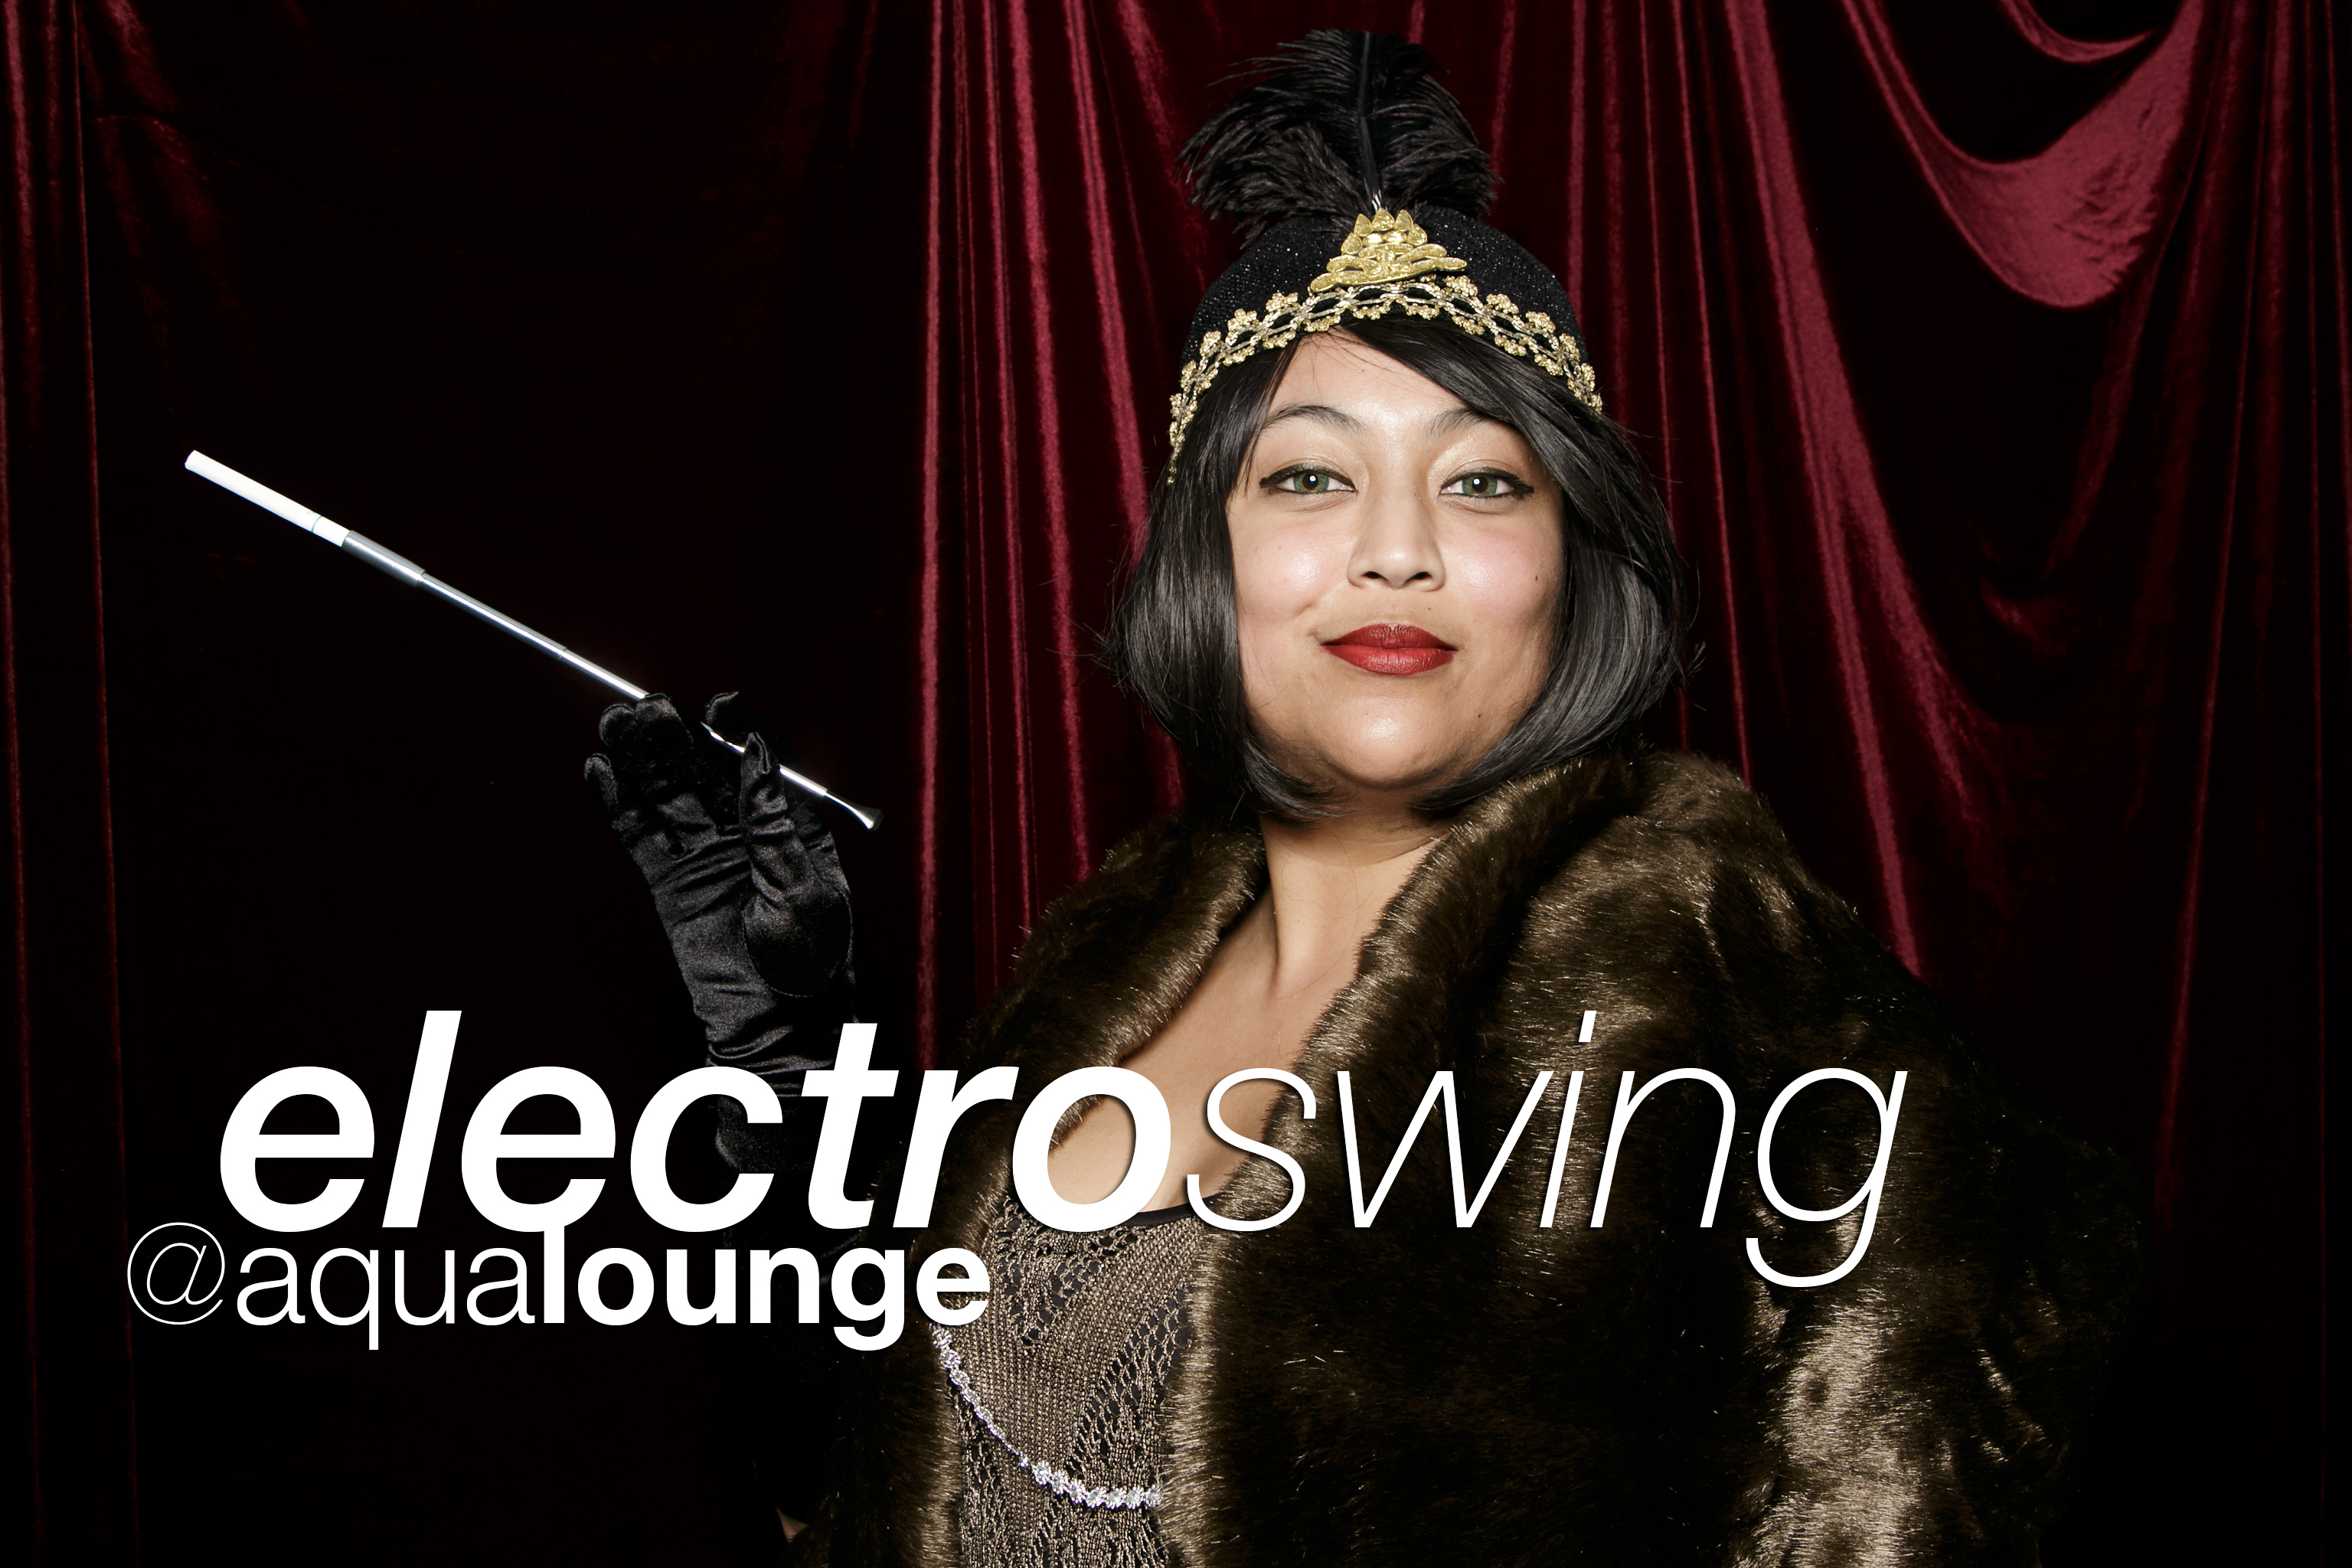 photo booth portraits from electro swing night at aqua lounge in macon, april 2017